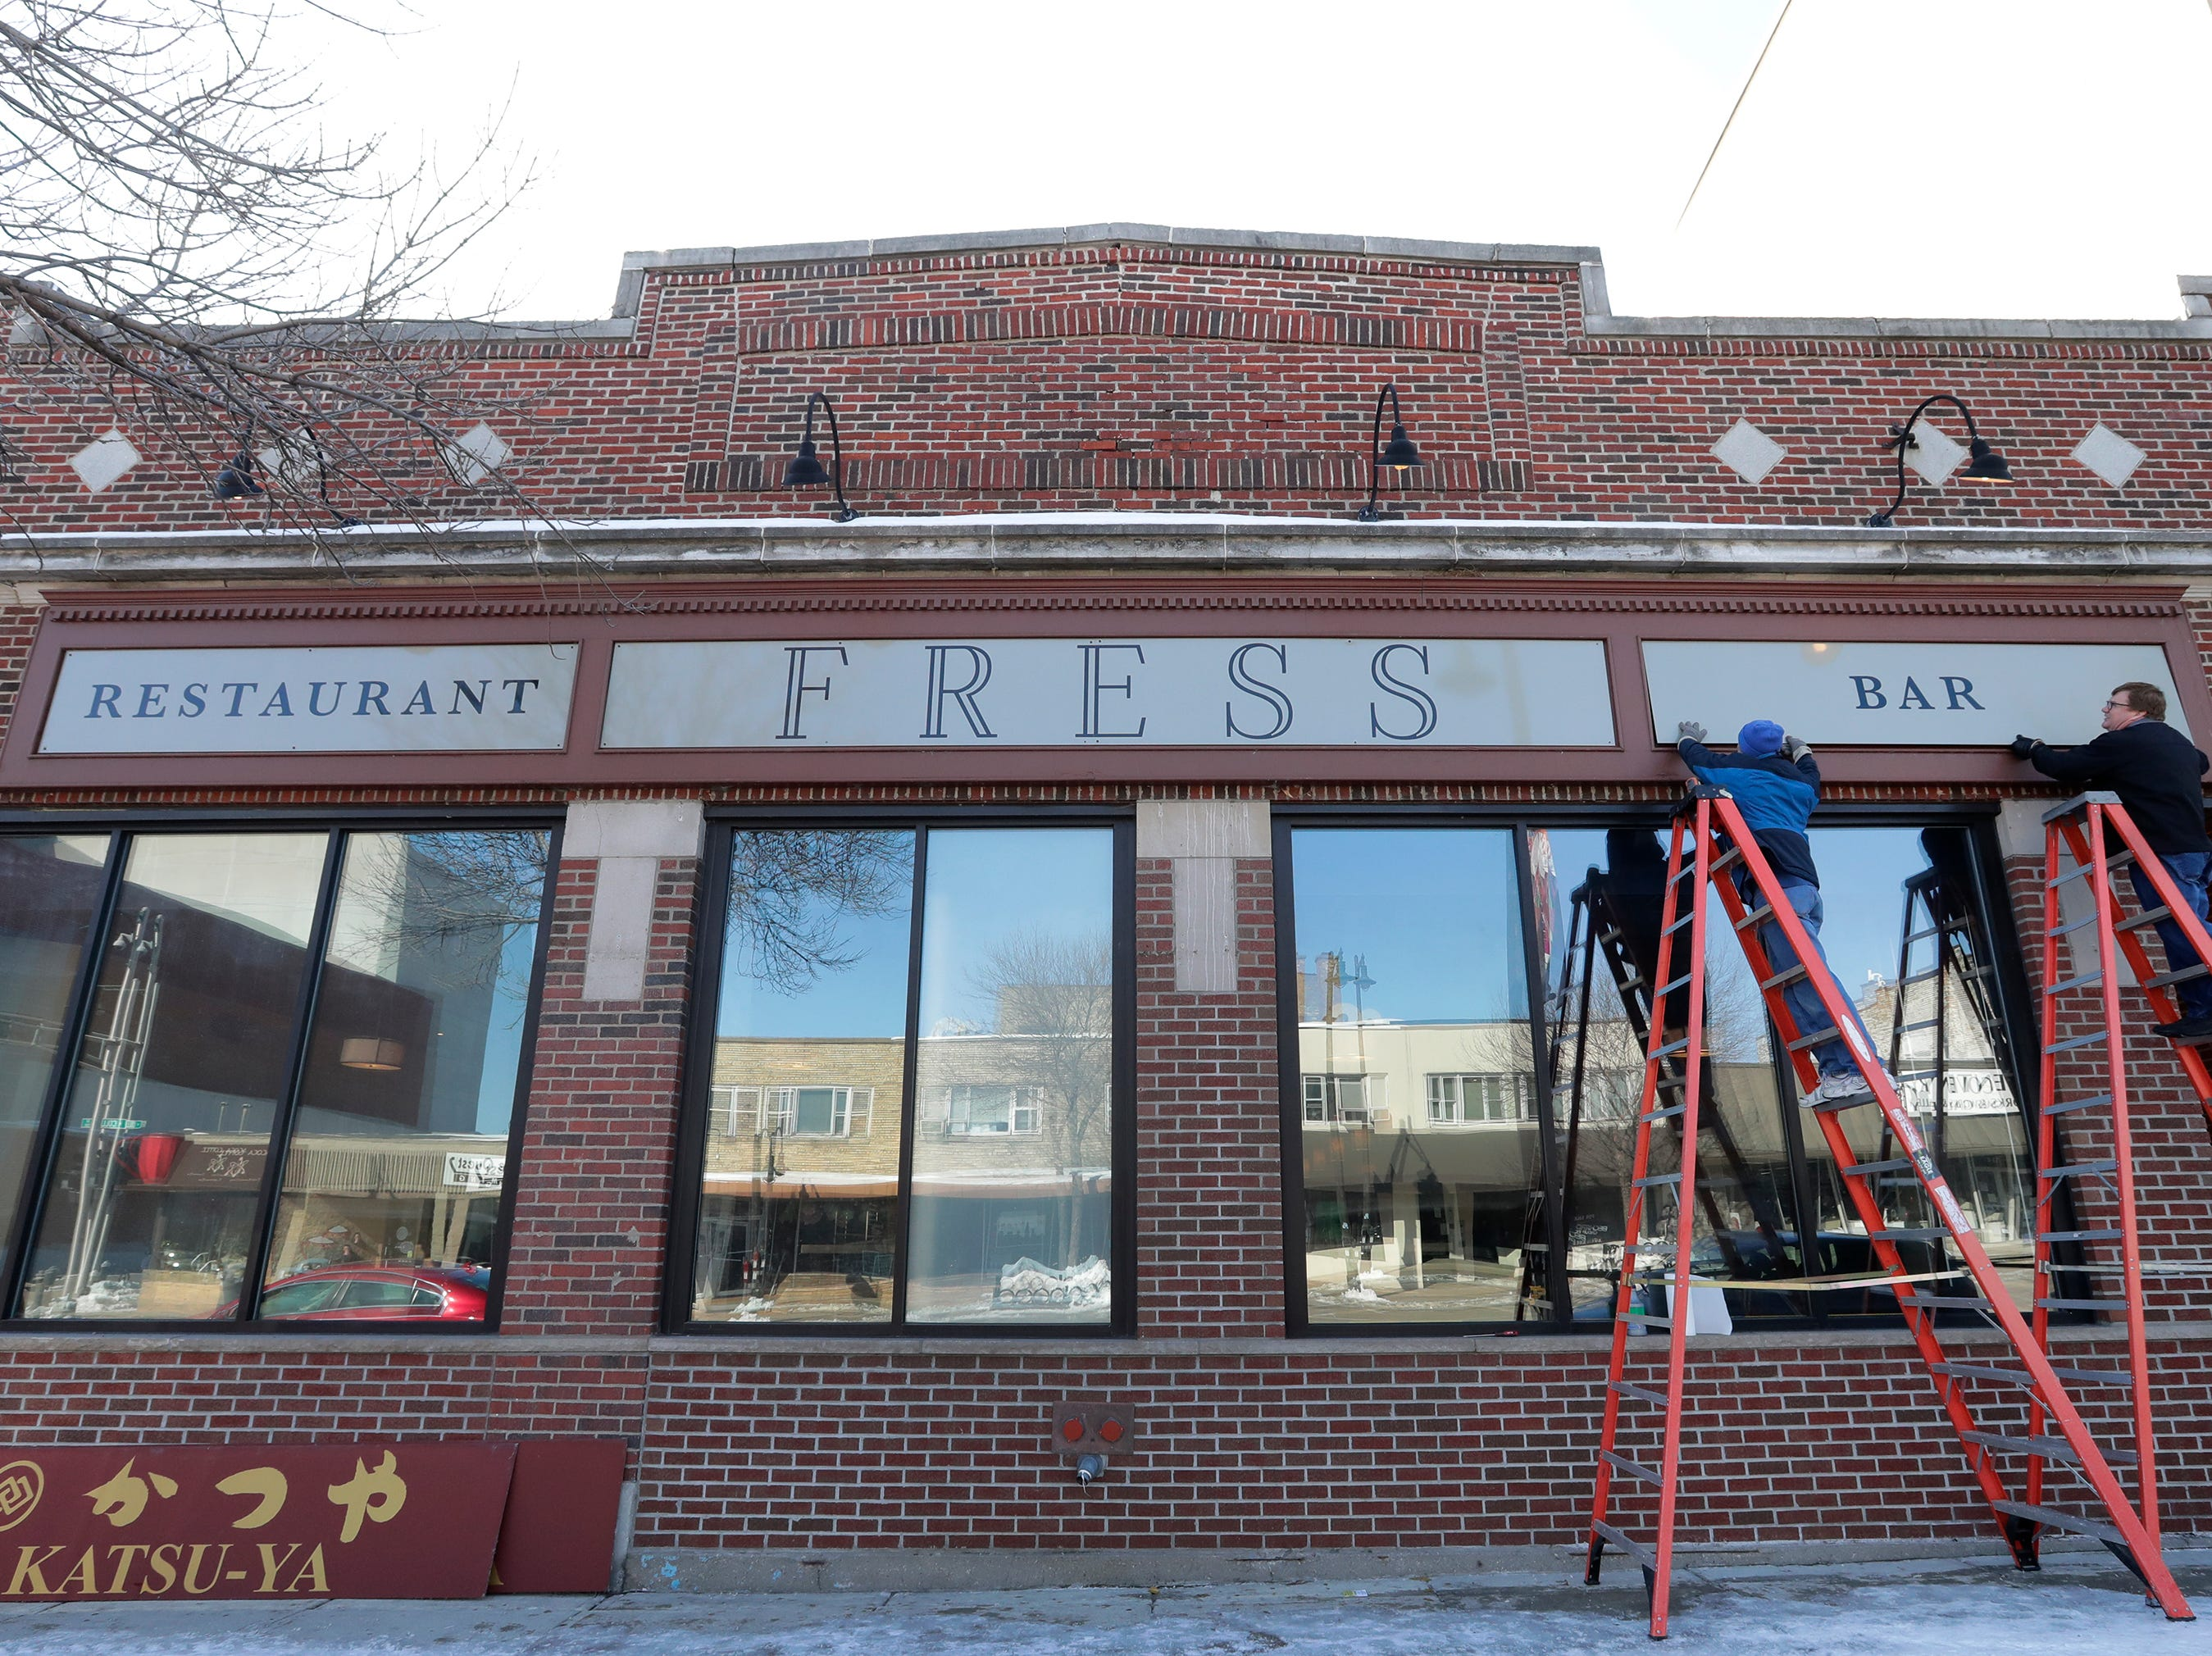 Employee Dane DeValk, left, collaborates with Eagle Sign & Design owner Chris Hermann to install the new Fress restaurant and bar sign at 511 W College Avenue in the space of the former Katsu-Ya Monday, March 12, 2019, in downtown Appleton, Wis. Dan Powers/USA TODAY NETWORK-Wisconsin